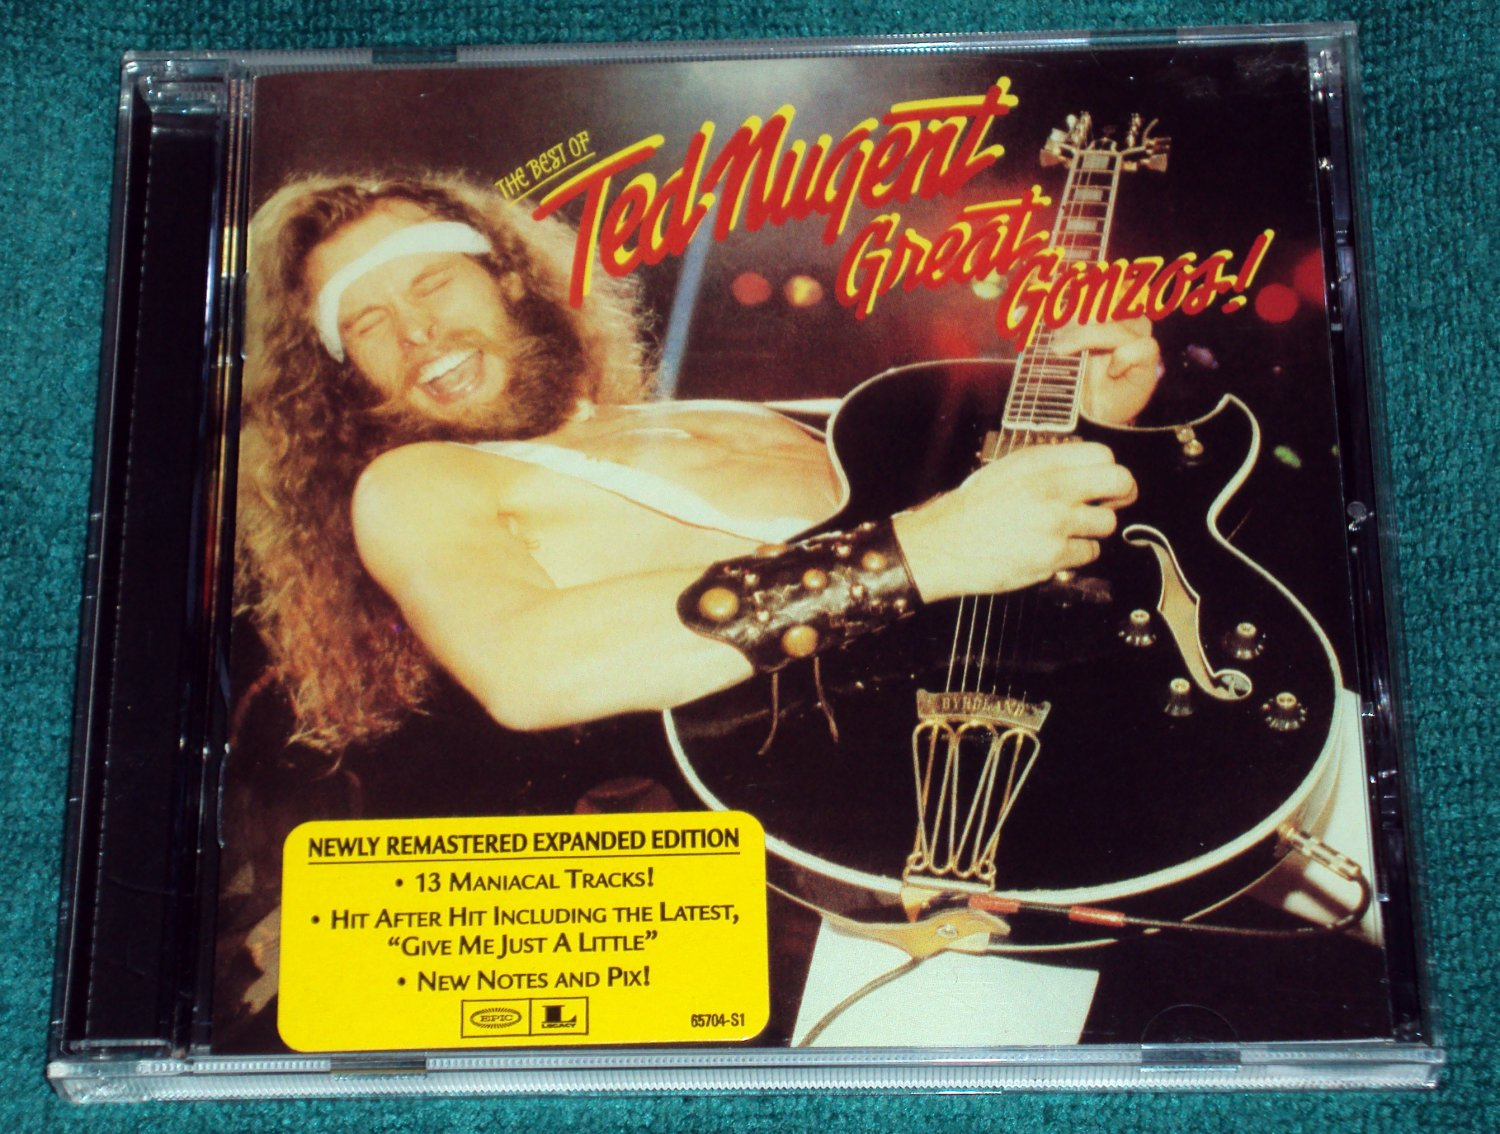 Ted Nugent � Great Gonzos! (CD, The Expanded Edition, Digitally Remastered)